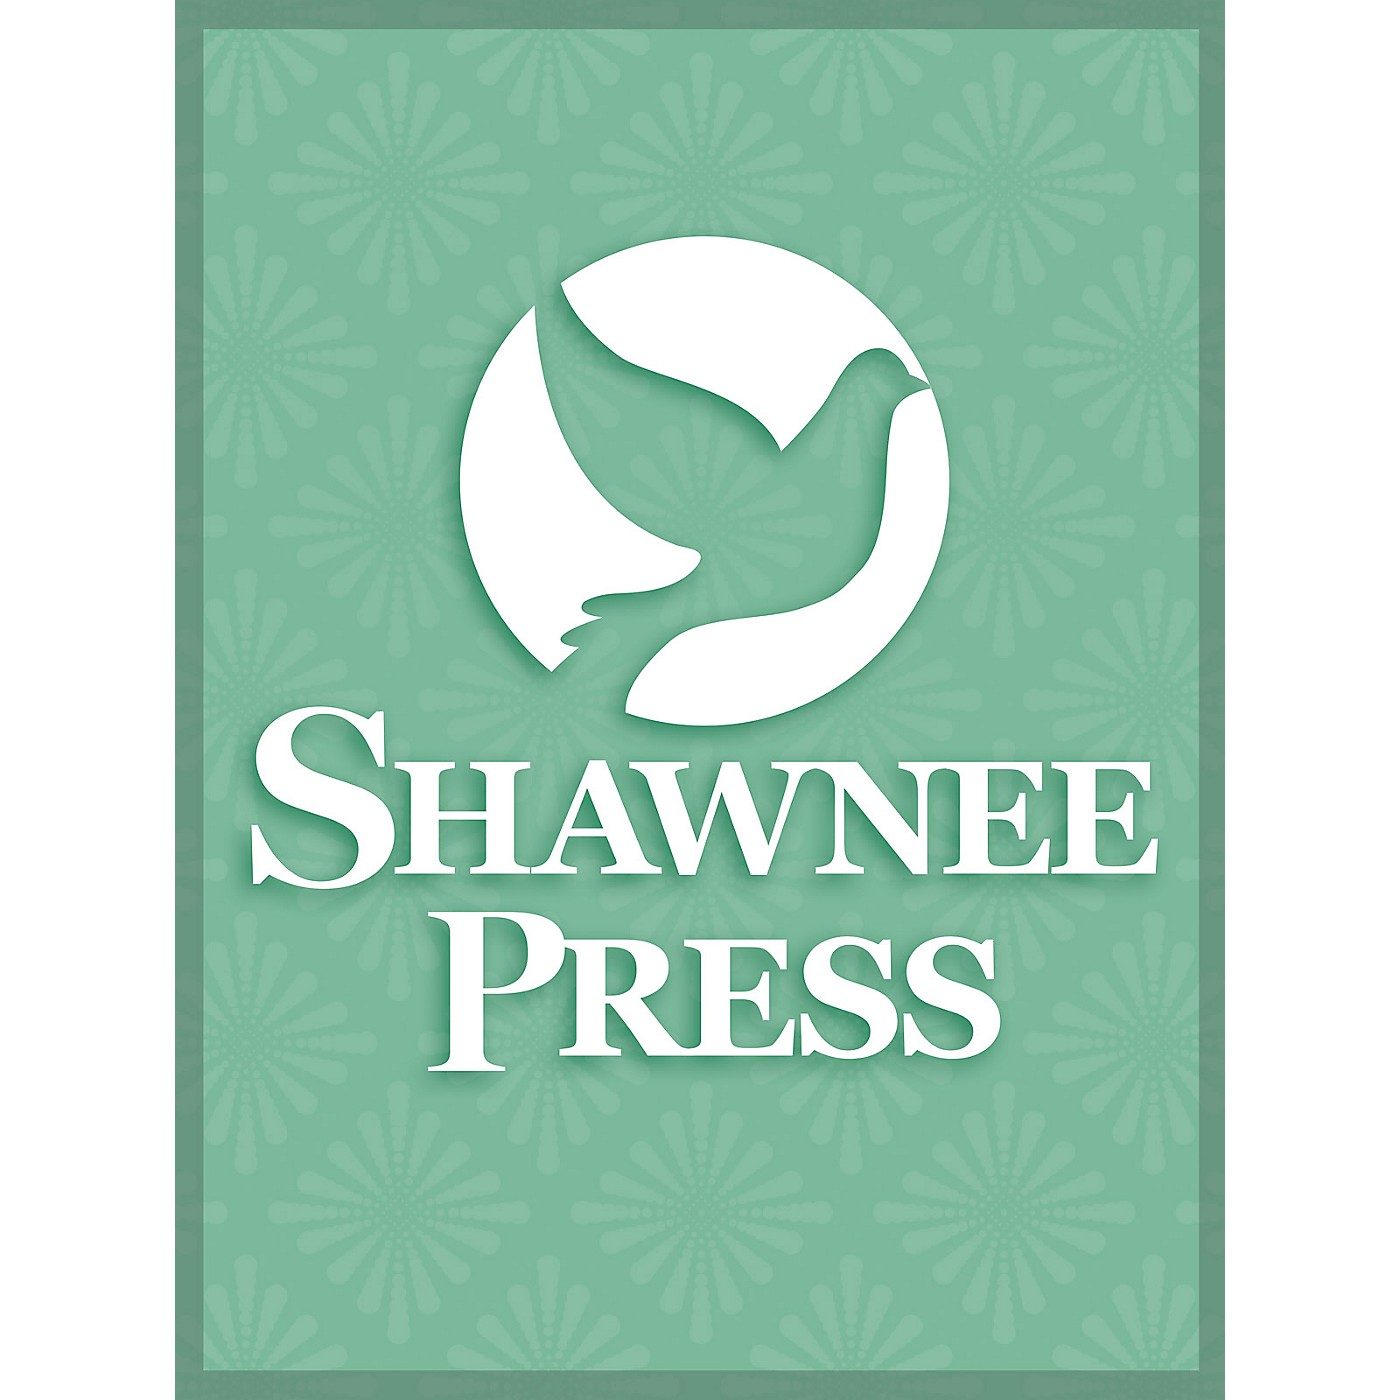 Shawnee Press Elm Is Scattering, The (Oboe, Piano) Shawnee Press Series thumbnail